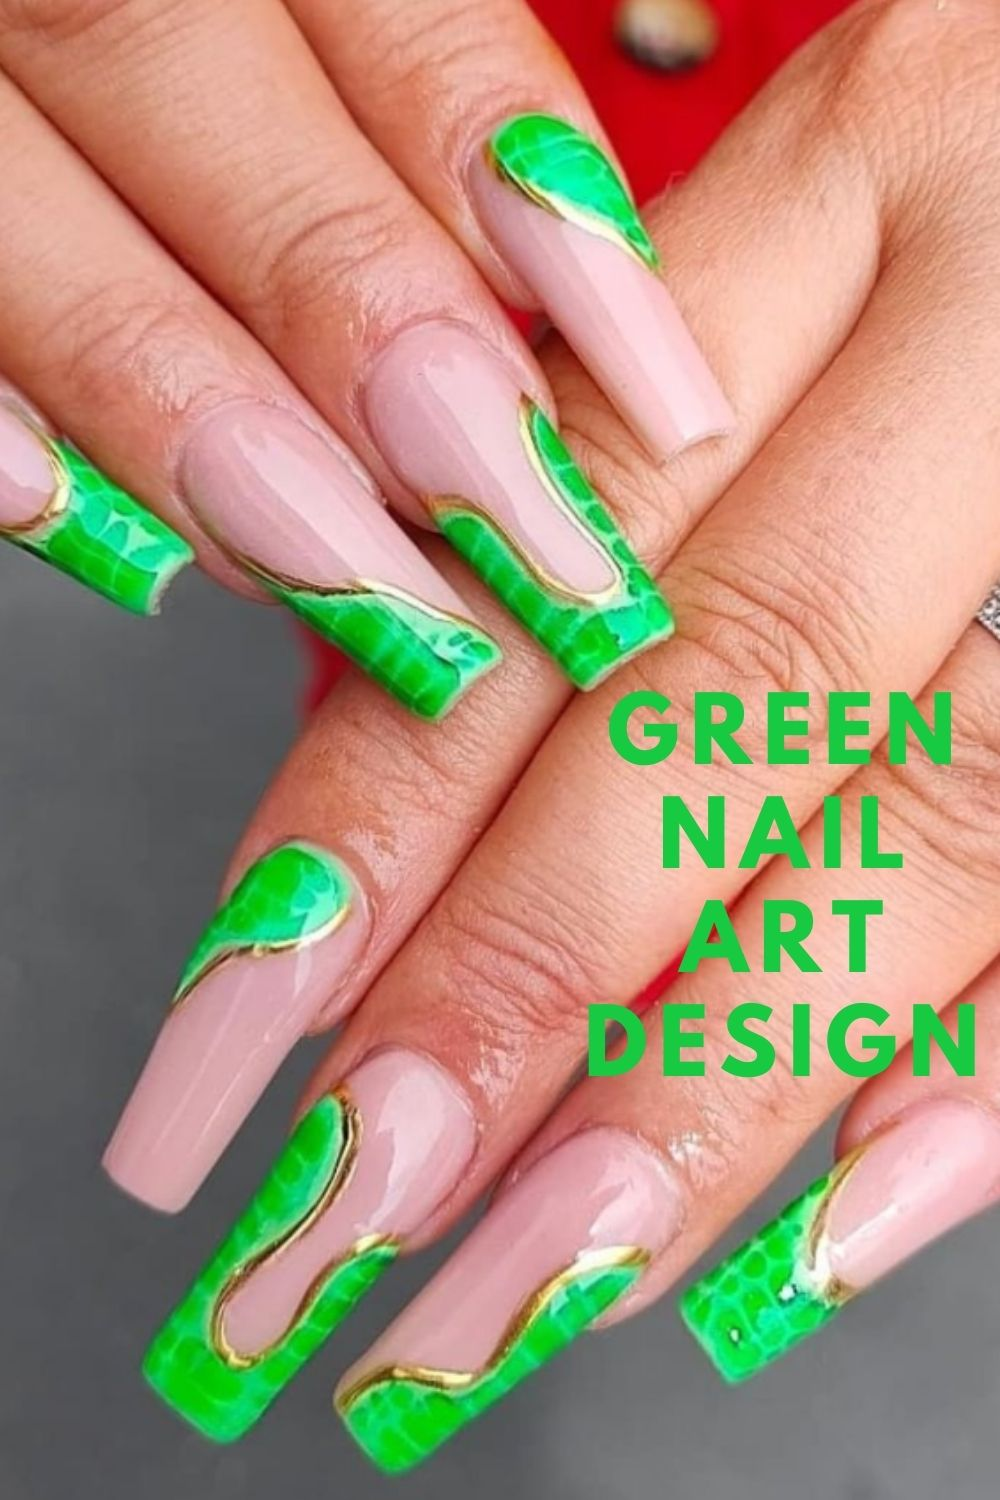 Gold and green coffin nails art designs